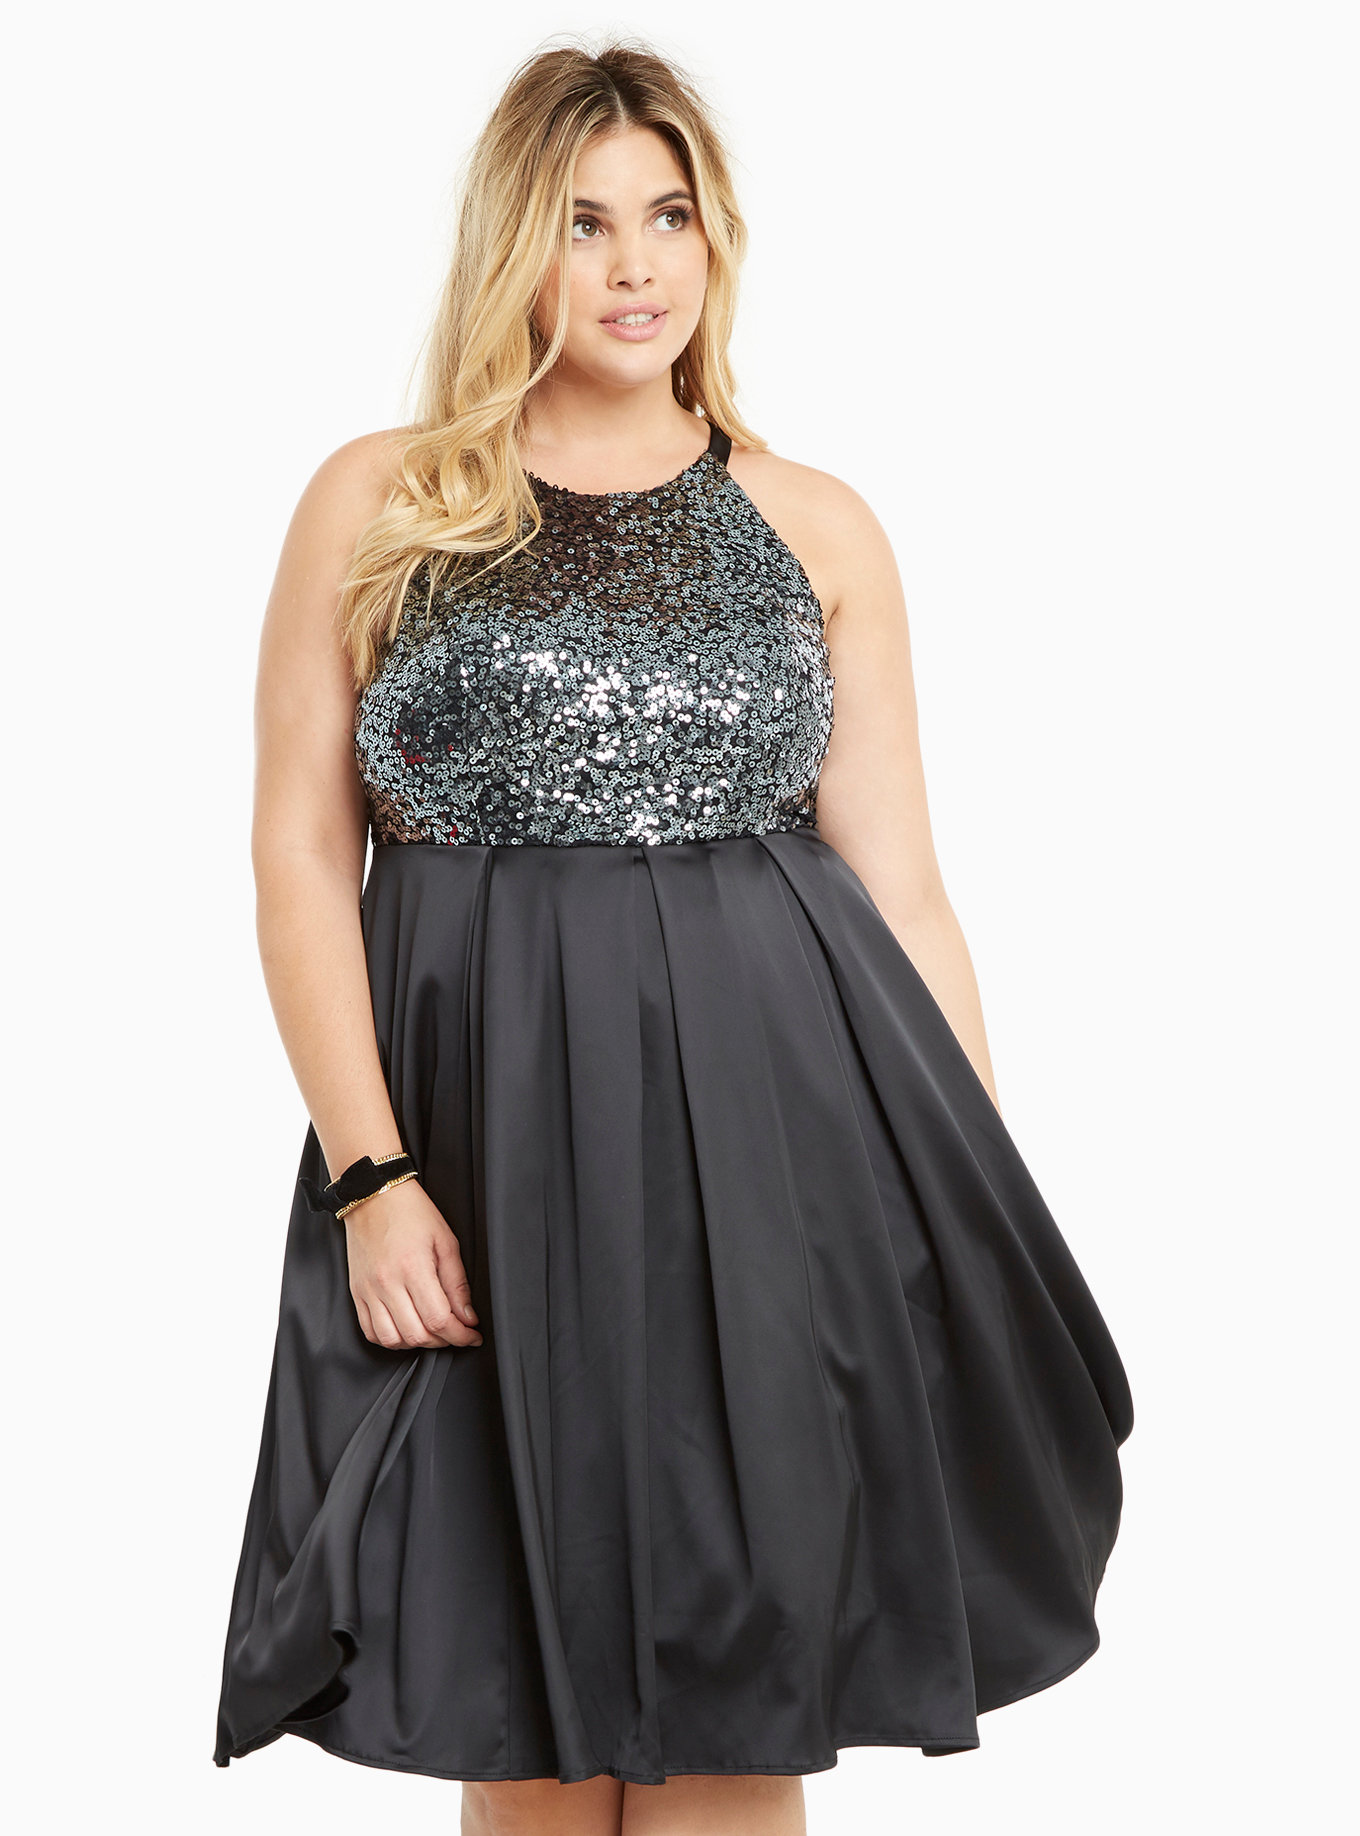 20 glamorous plus-size dresses you can rock for New Year's Eve